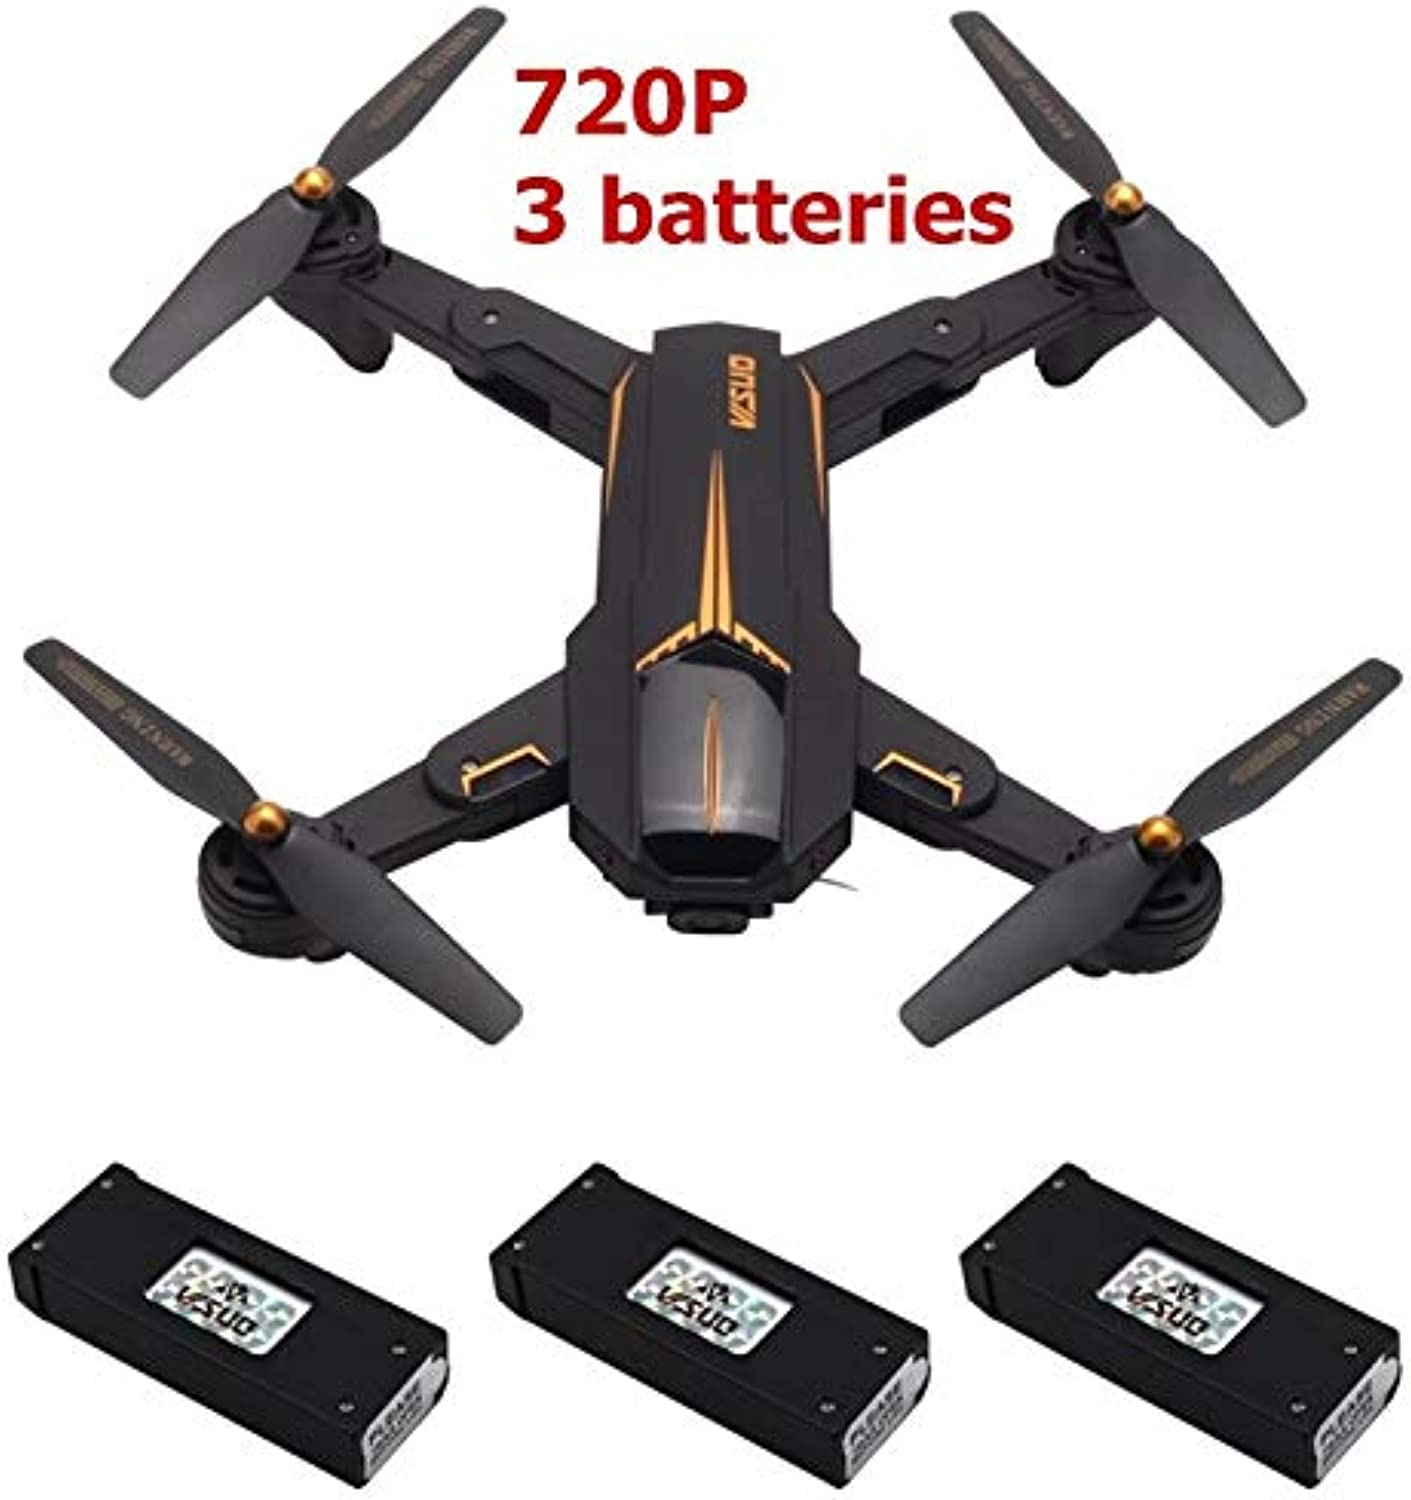 Generic Newest VISUO GPS RC Drone 2MP HD Camera 5G WiFi FPV Altitude Hold One Key Return RC Quadcopter Helicopter VS E58 X12 XS809S 720P 3 Batteries